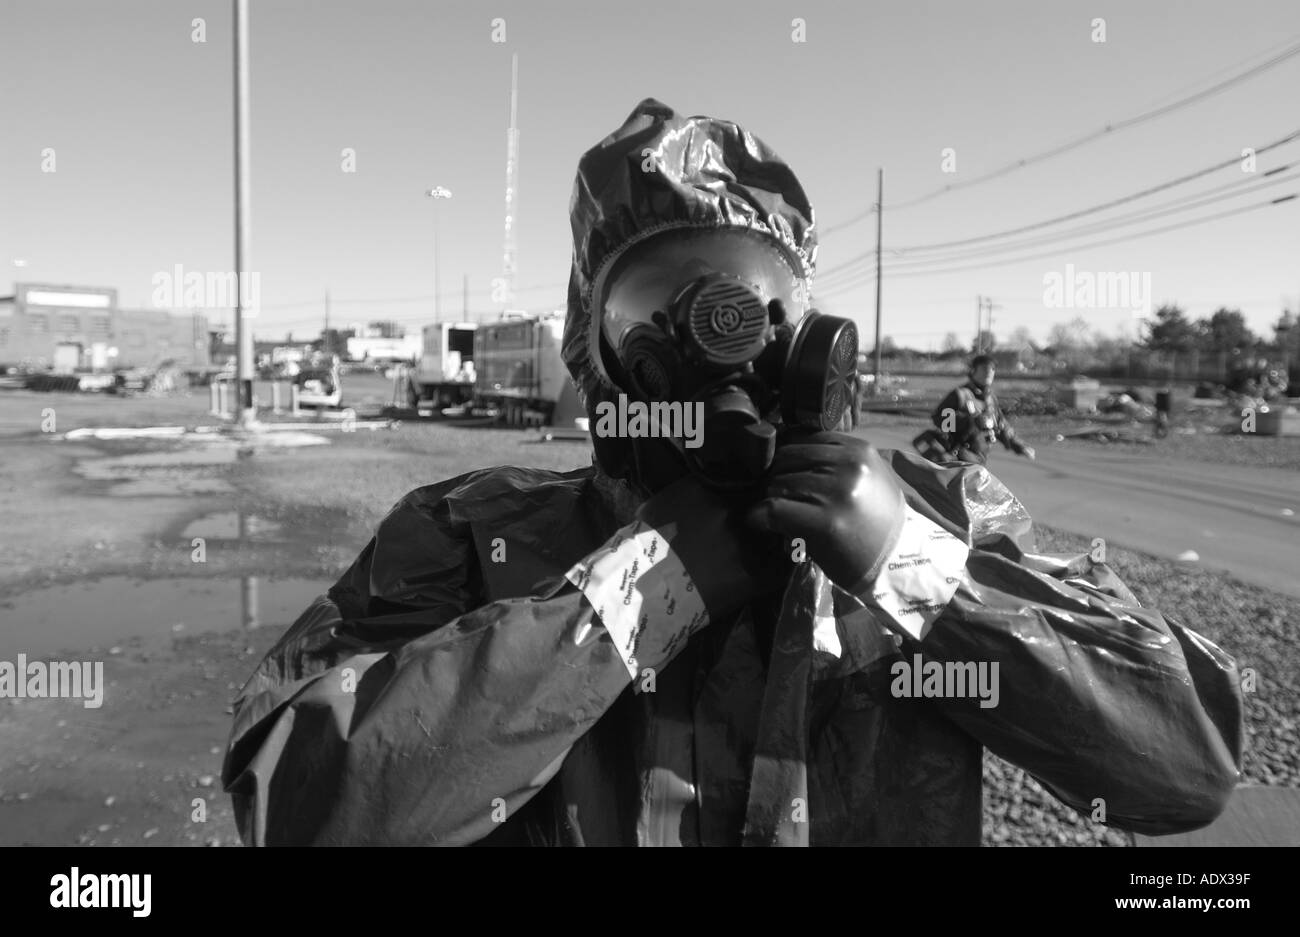 Firefighter with biohazard emergency gear mask and suit - Stock Image